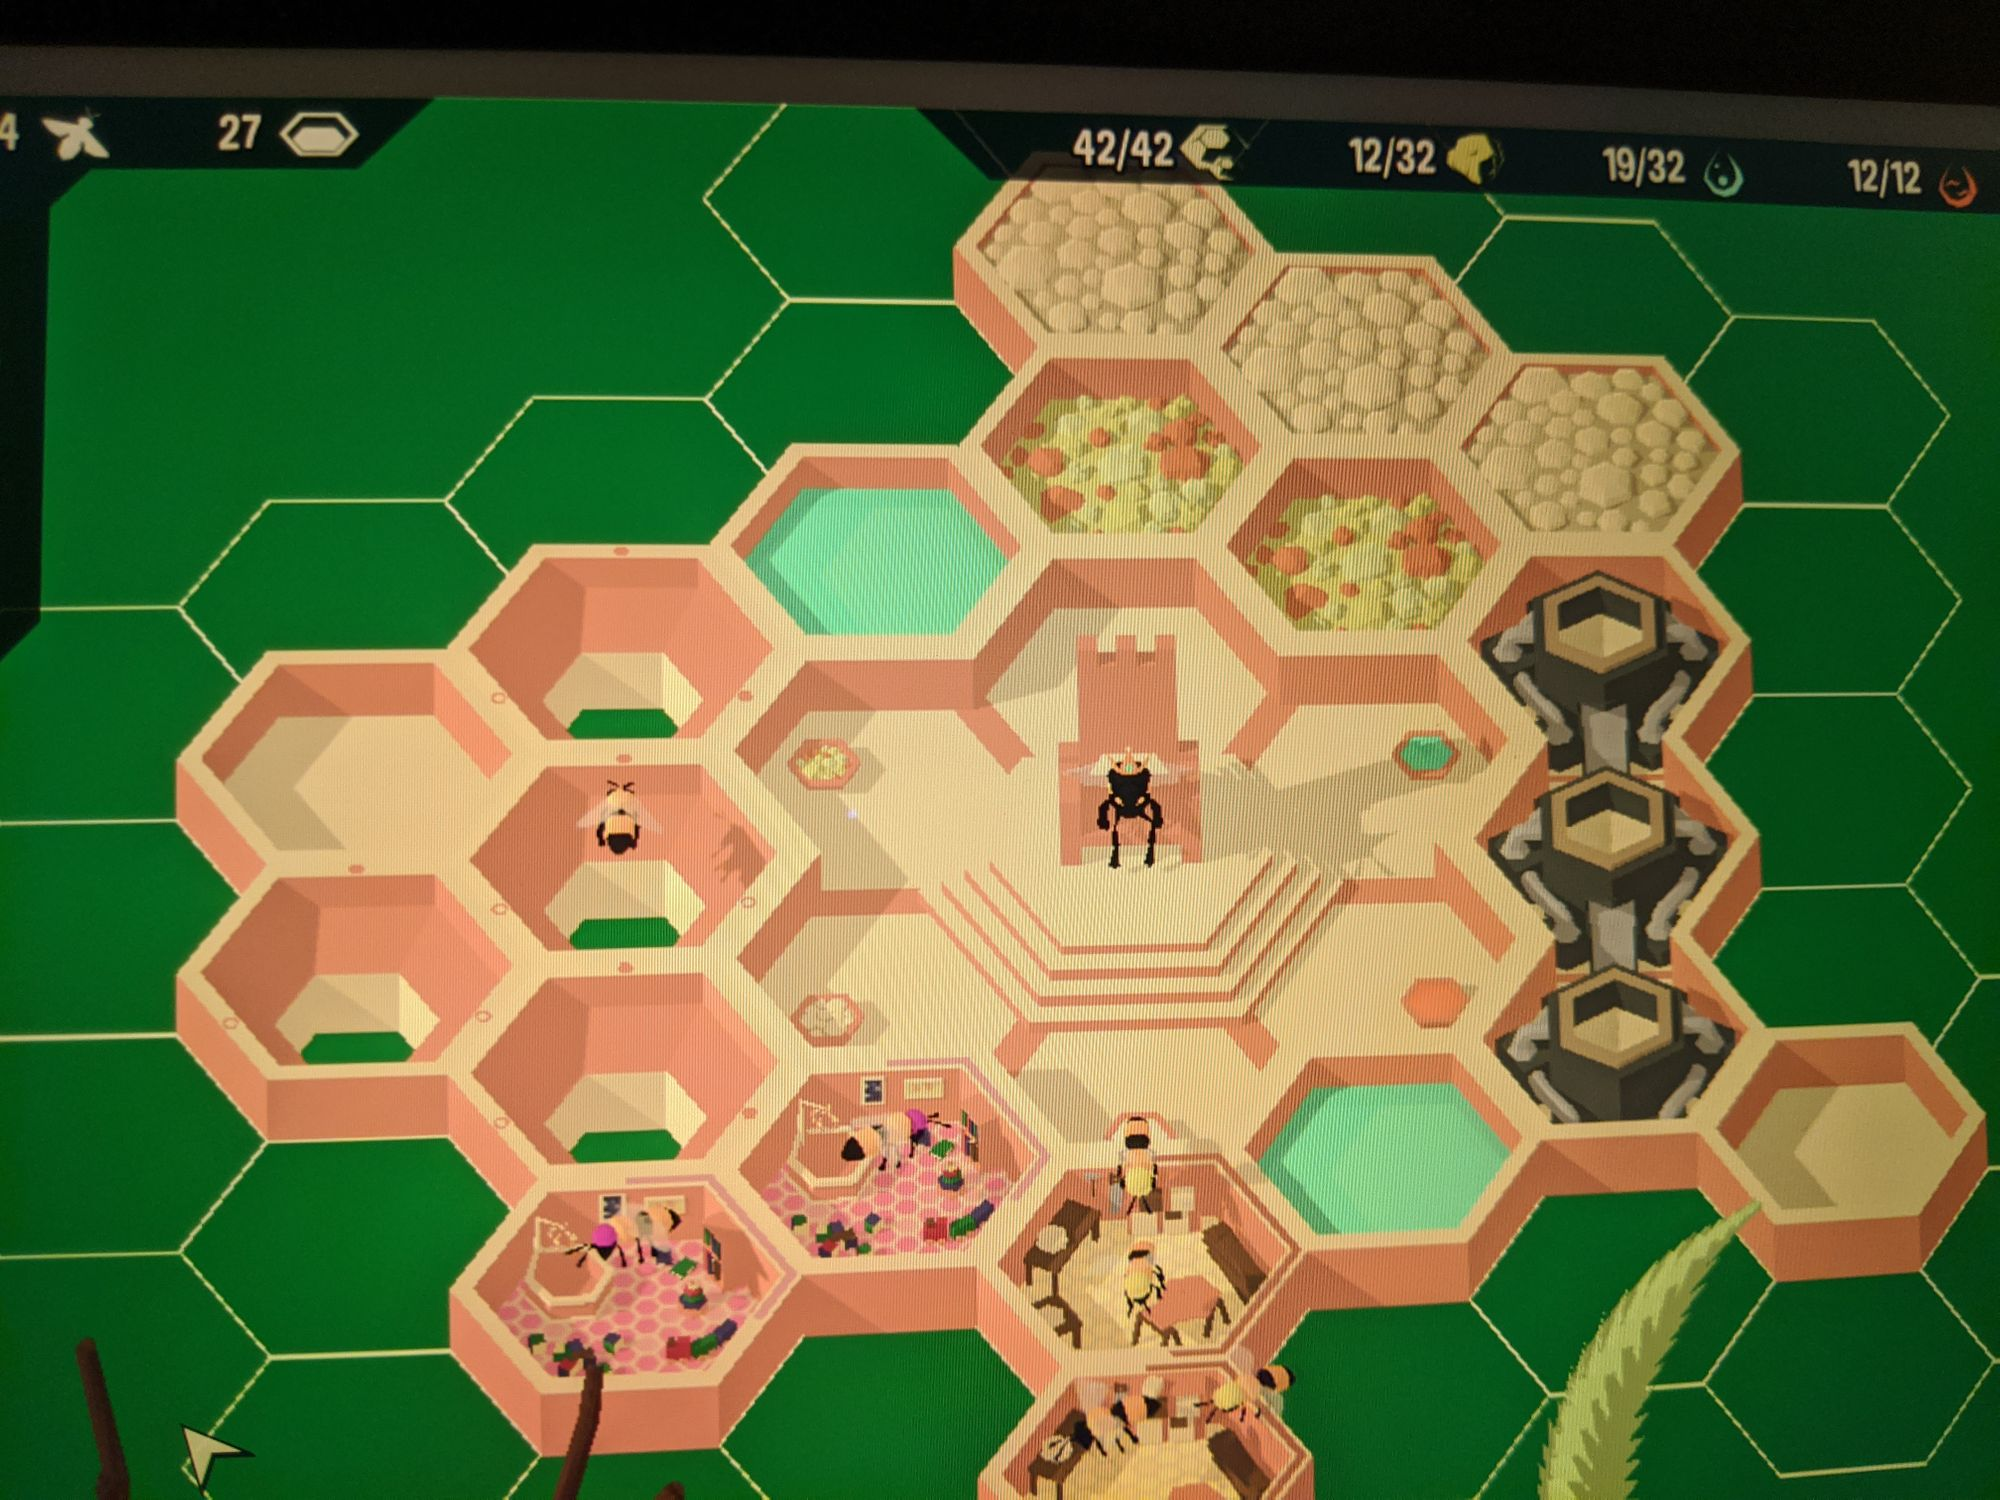 A phone picture of the game Hive Time, a queen bee sits on her thrown and there are hexagon rooms around her with various uses.